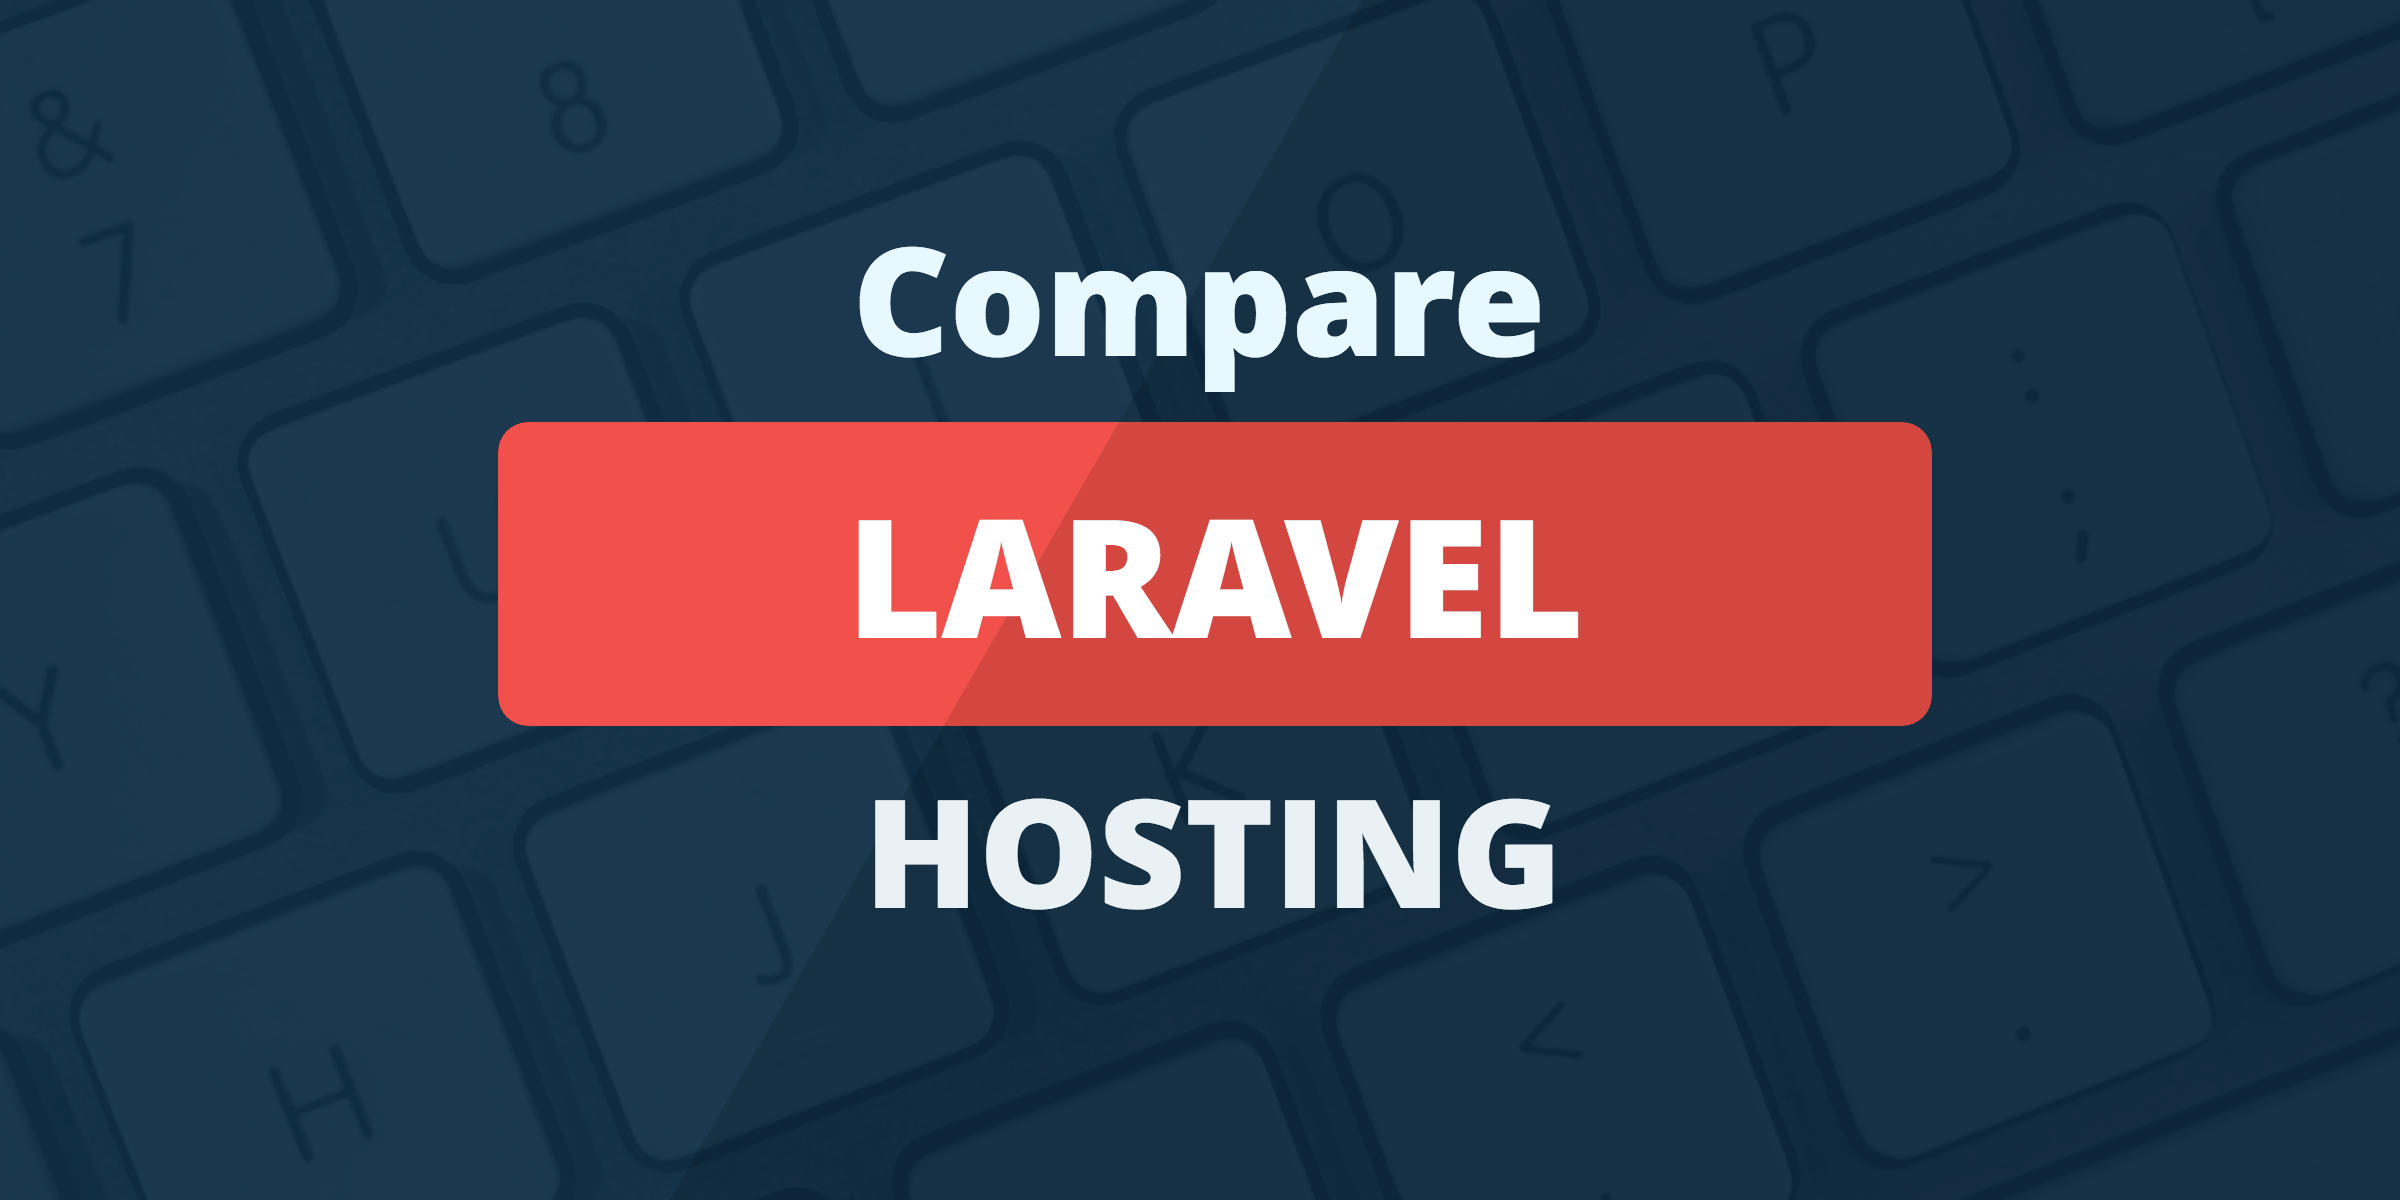 Laravel Hosting: Here Are The Best Hosting Options For 2019